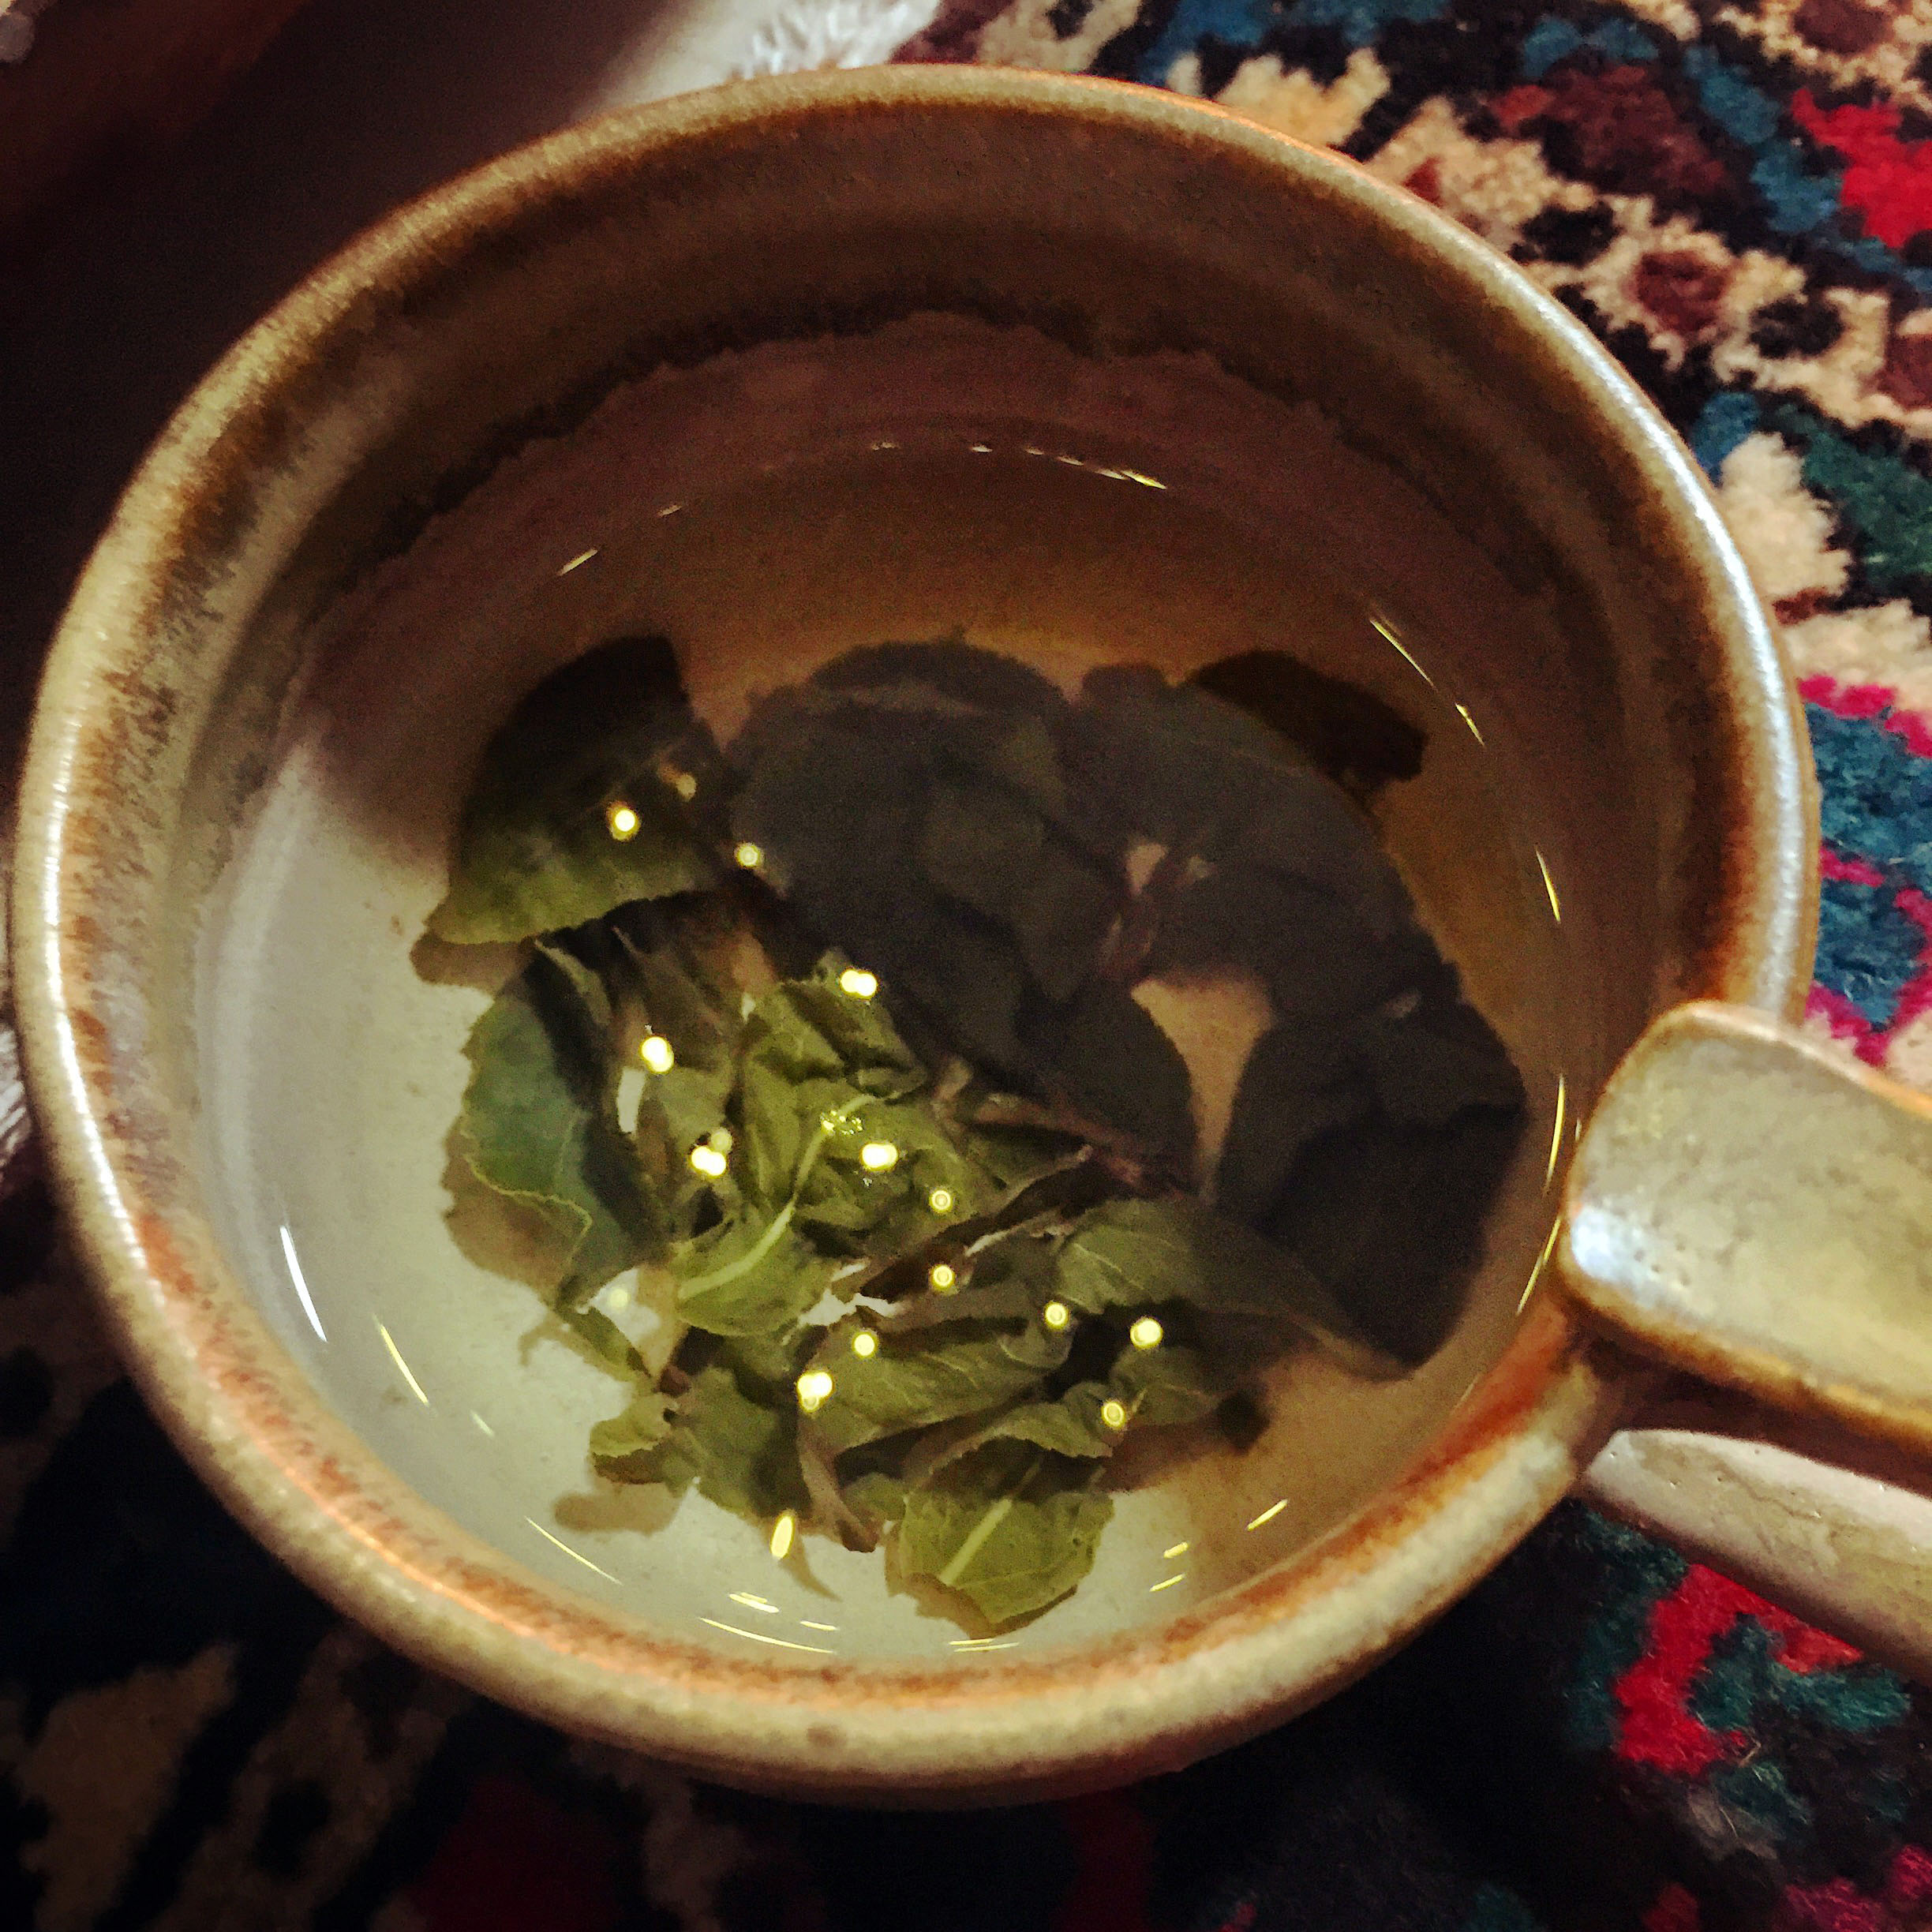 Of Tea & Compost